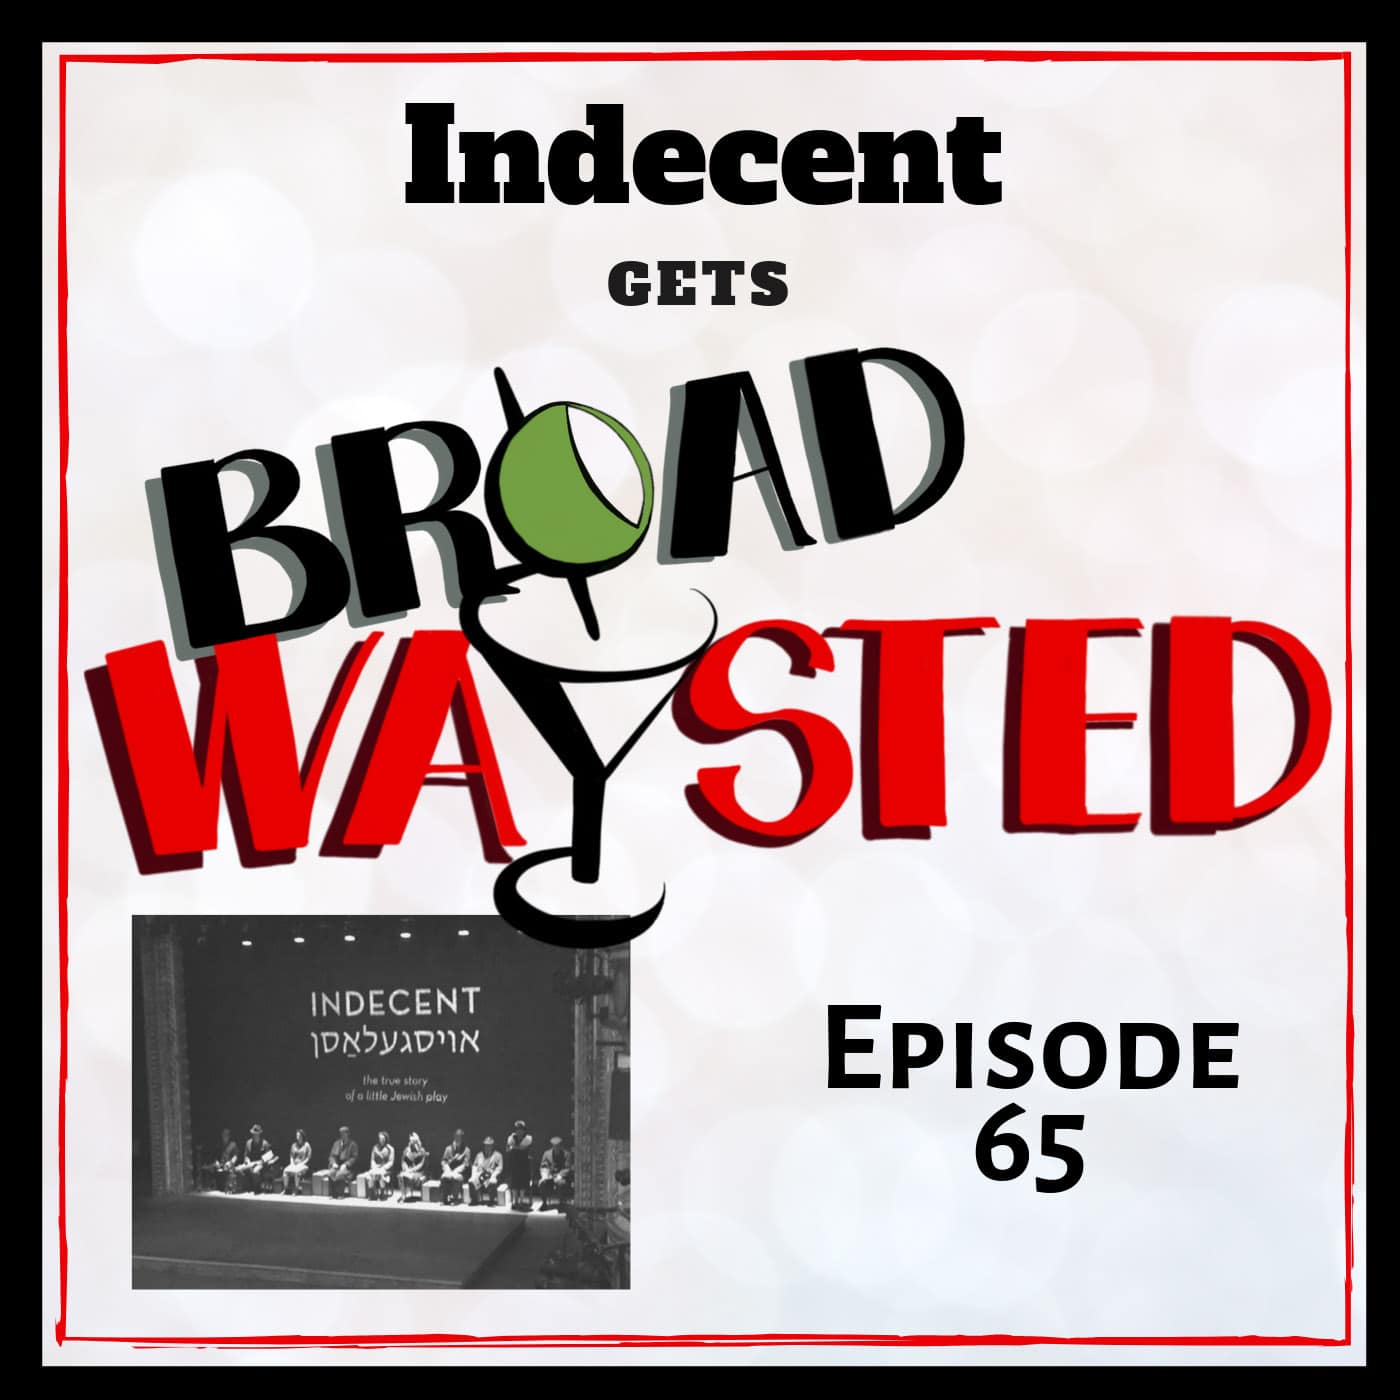 Broadwaysted Ep 65 Indecent